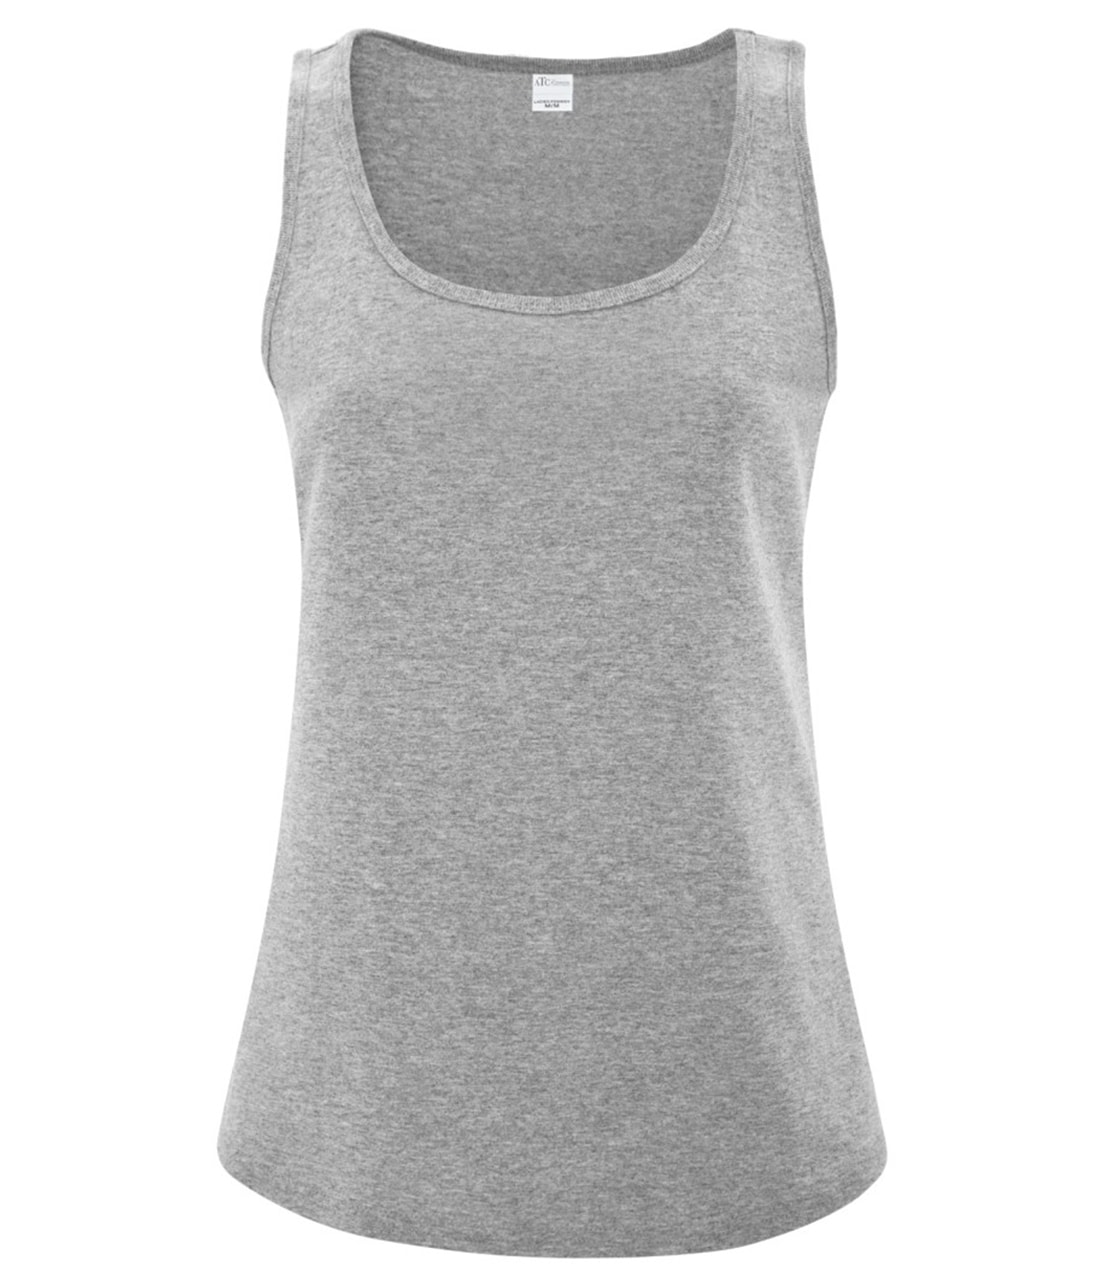 Picture of ATC Everyday Cotton Ladies Tank Top